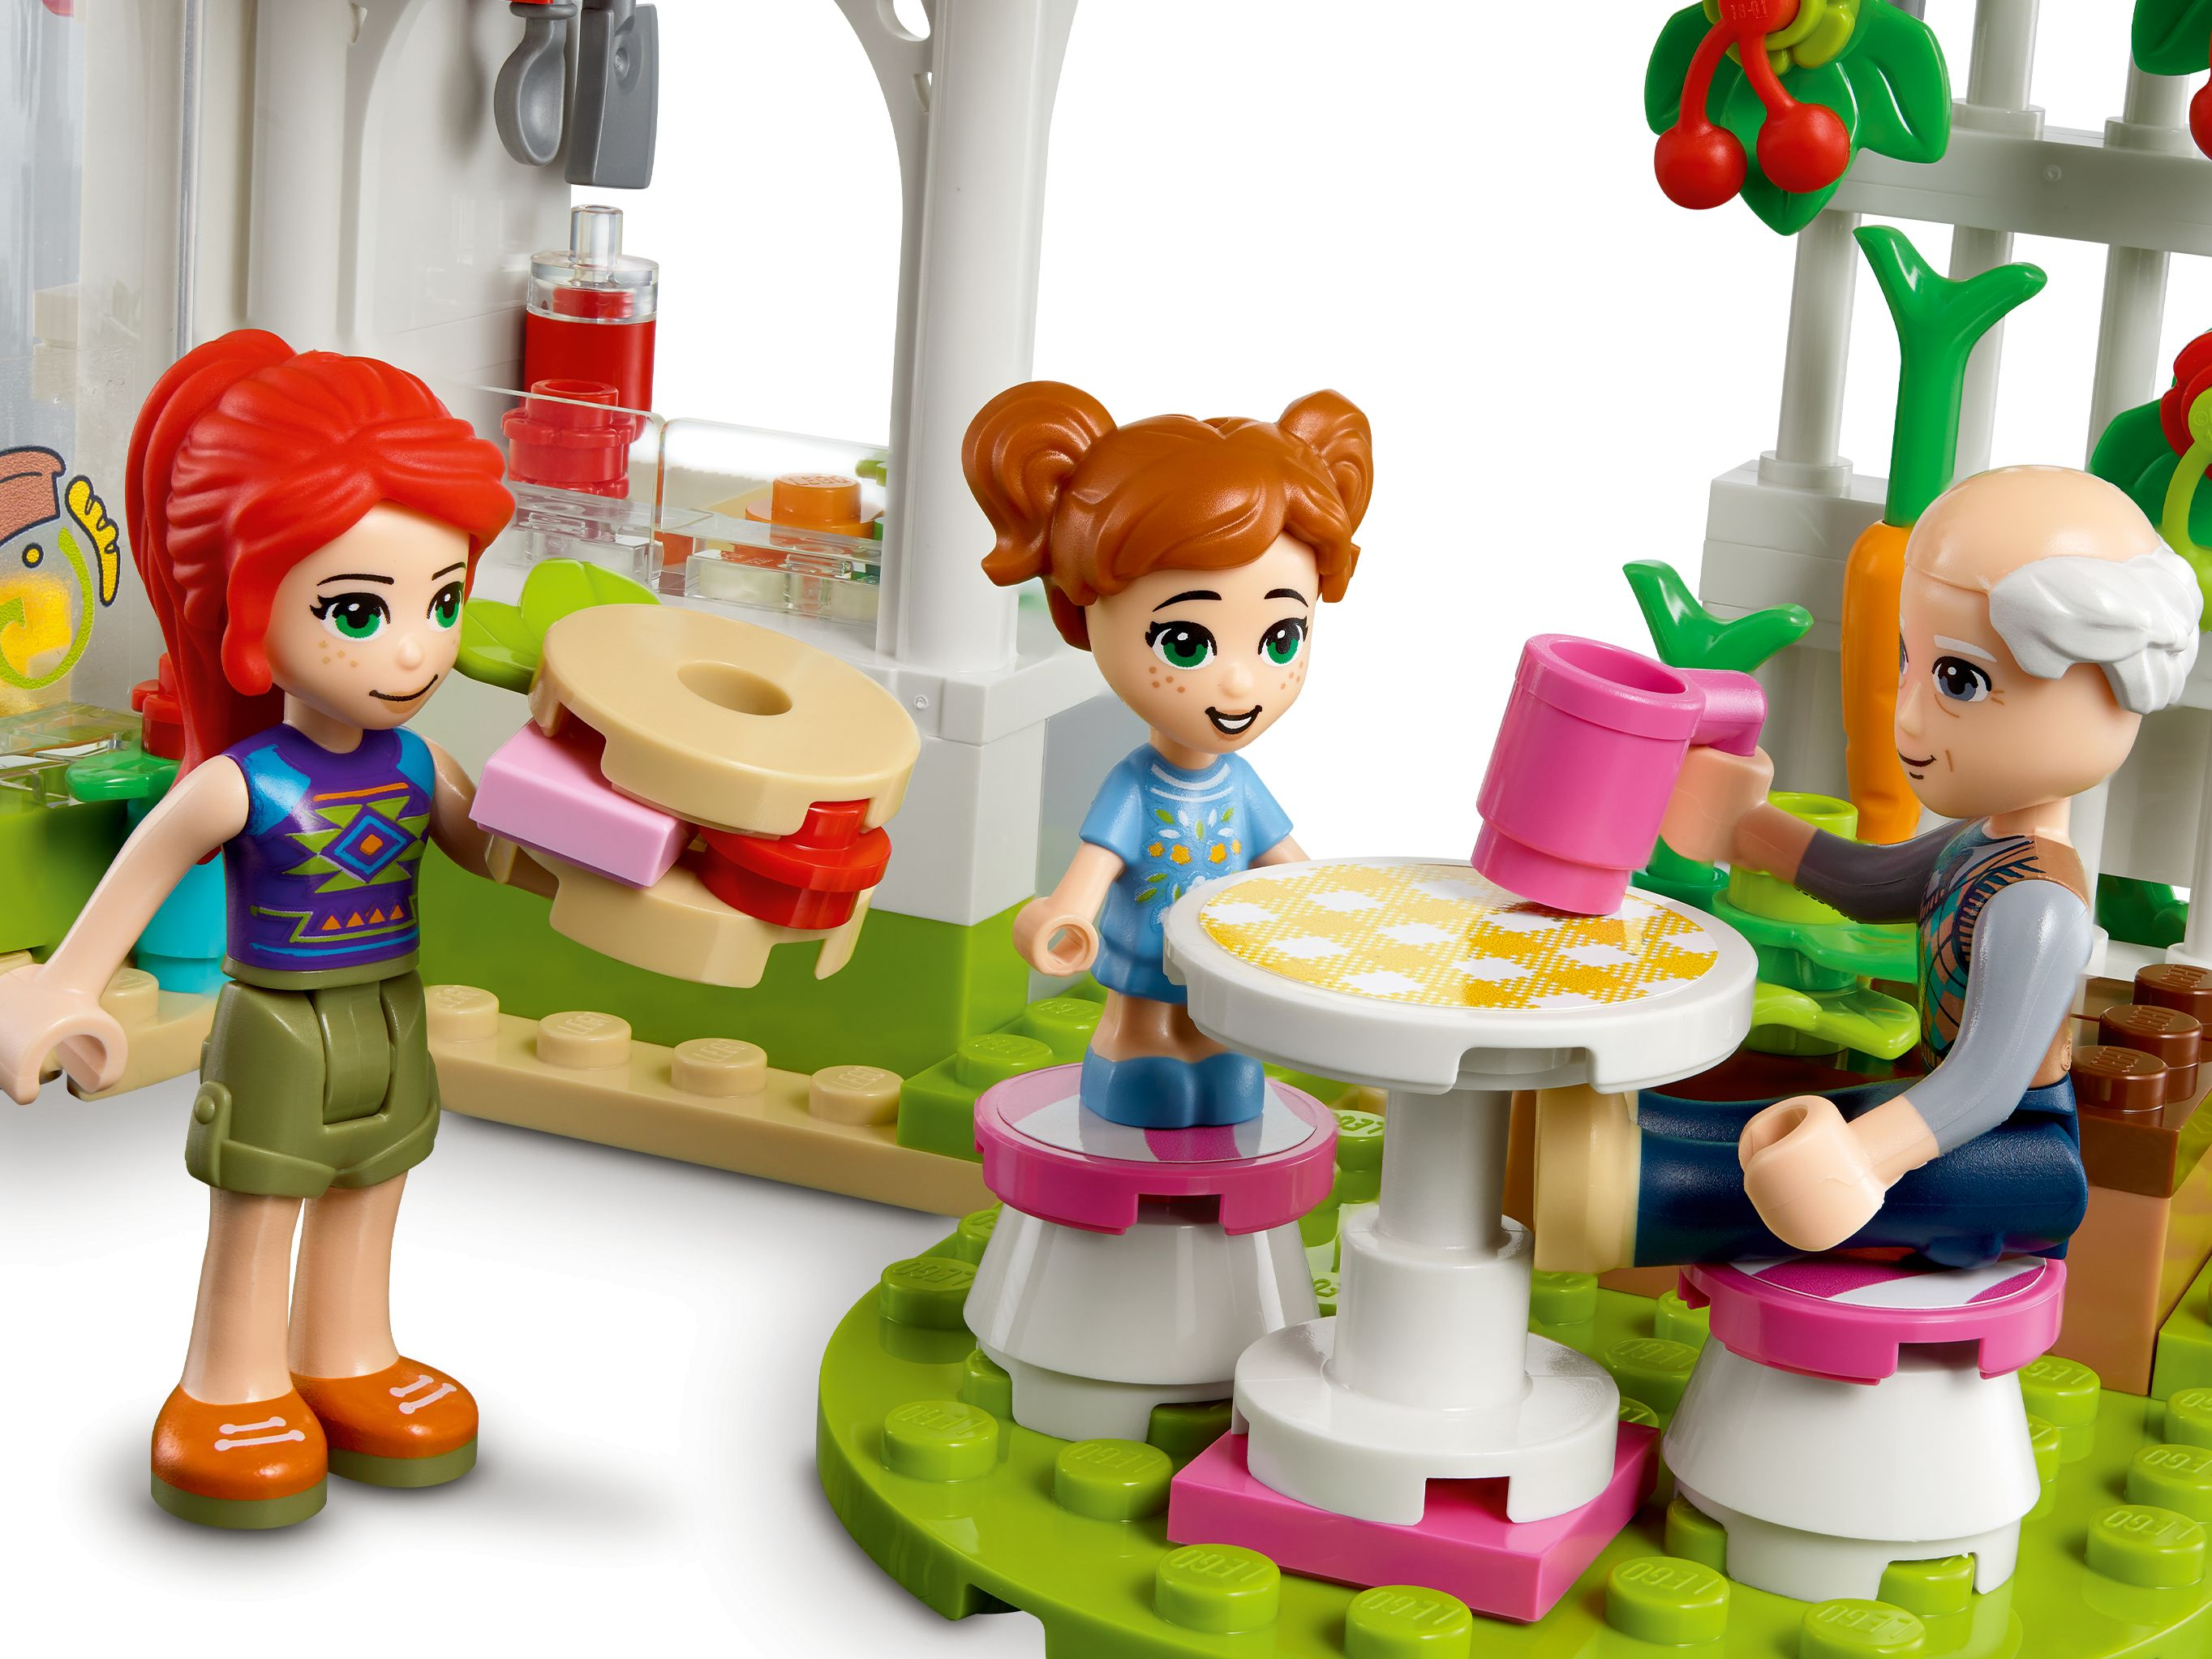 LEGO Friends 41444 Heartlake City Bio-Café LEGO_41444_alt8.jpg